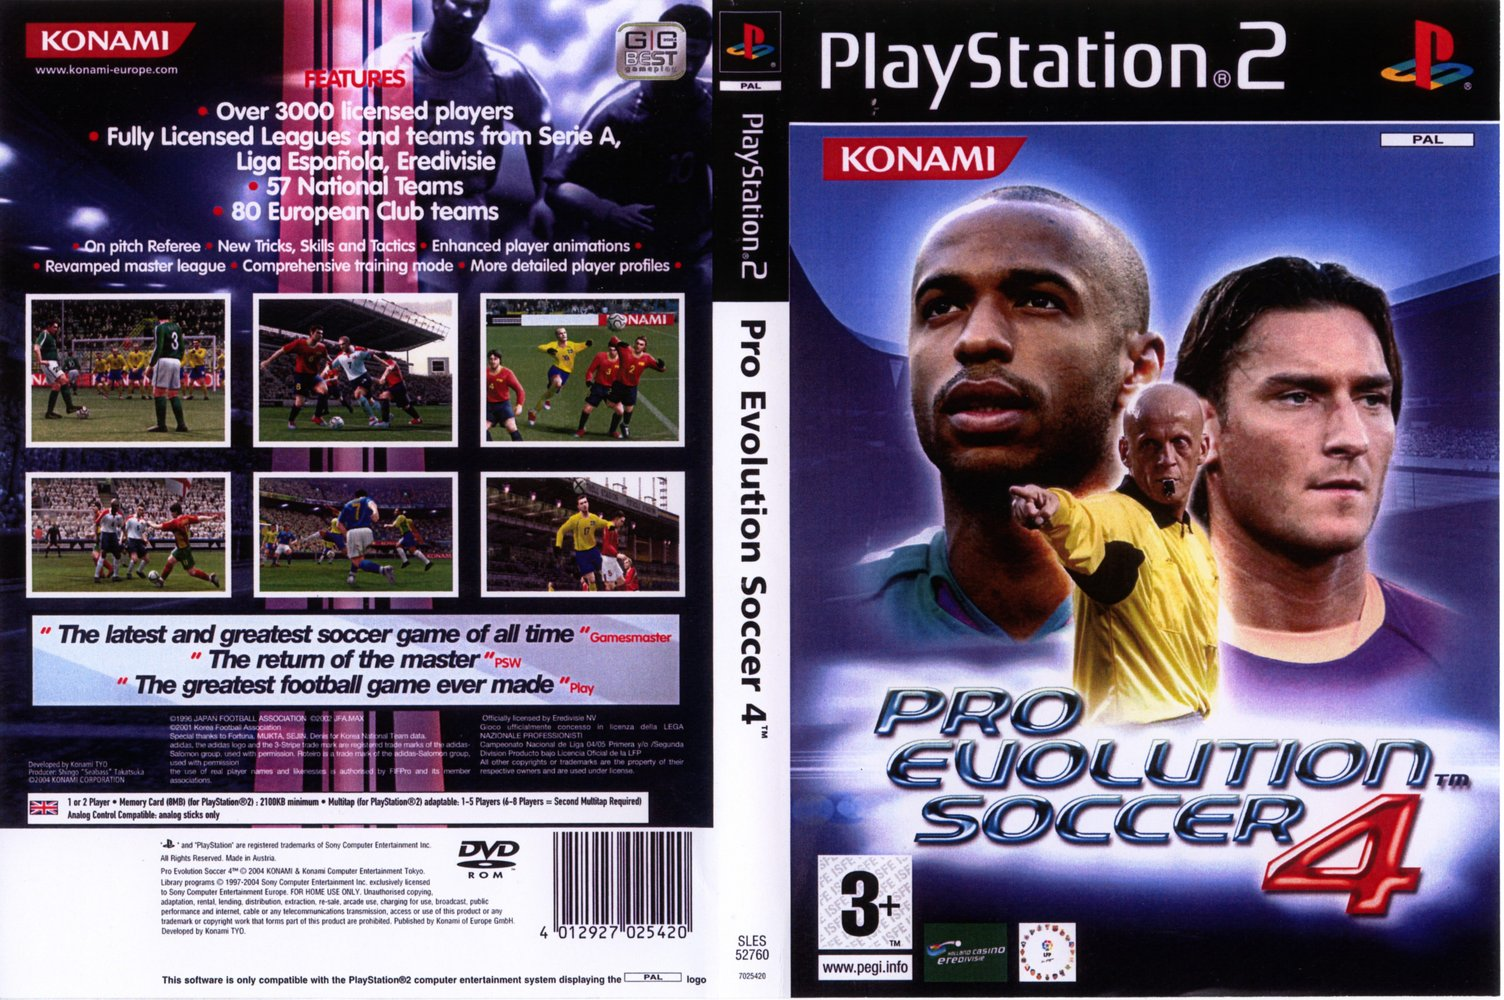 Pro Evolution Soccer 4 (Europe) (En,Fr,De,Es) (v2 00) ISO < PS2 ISOs